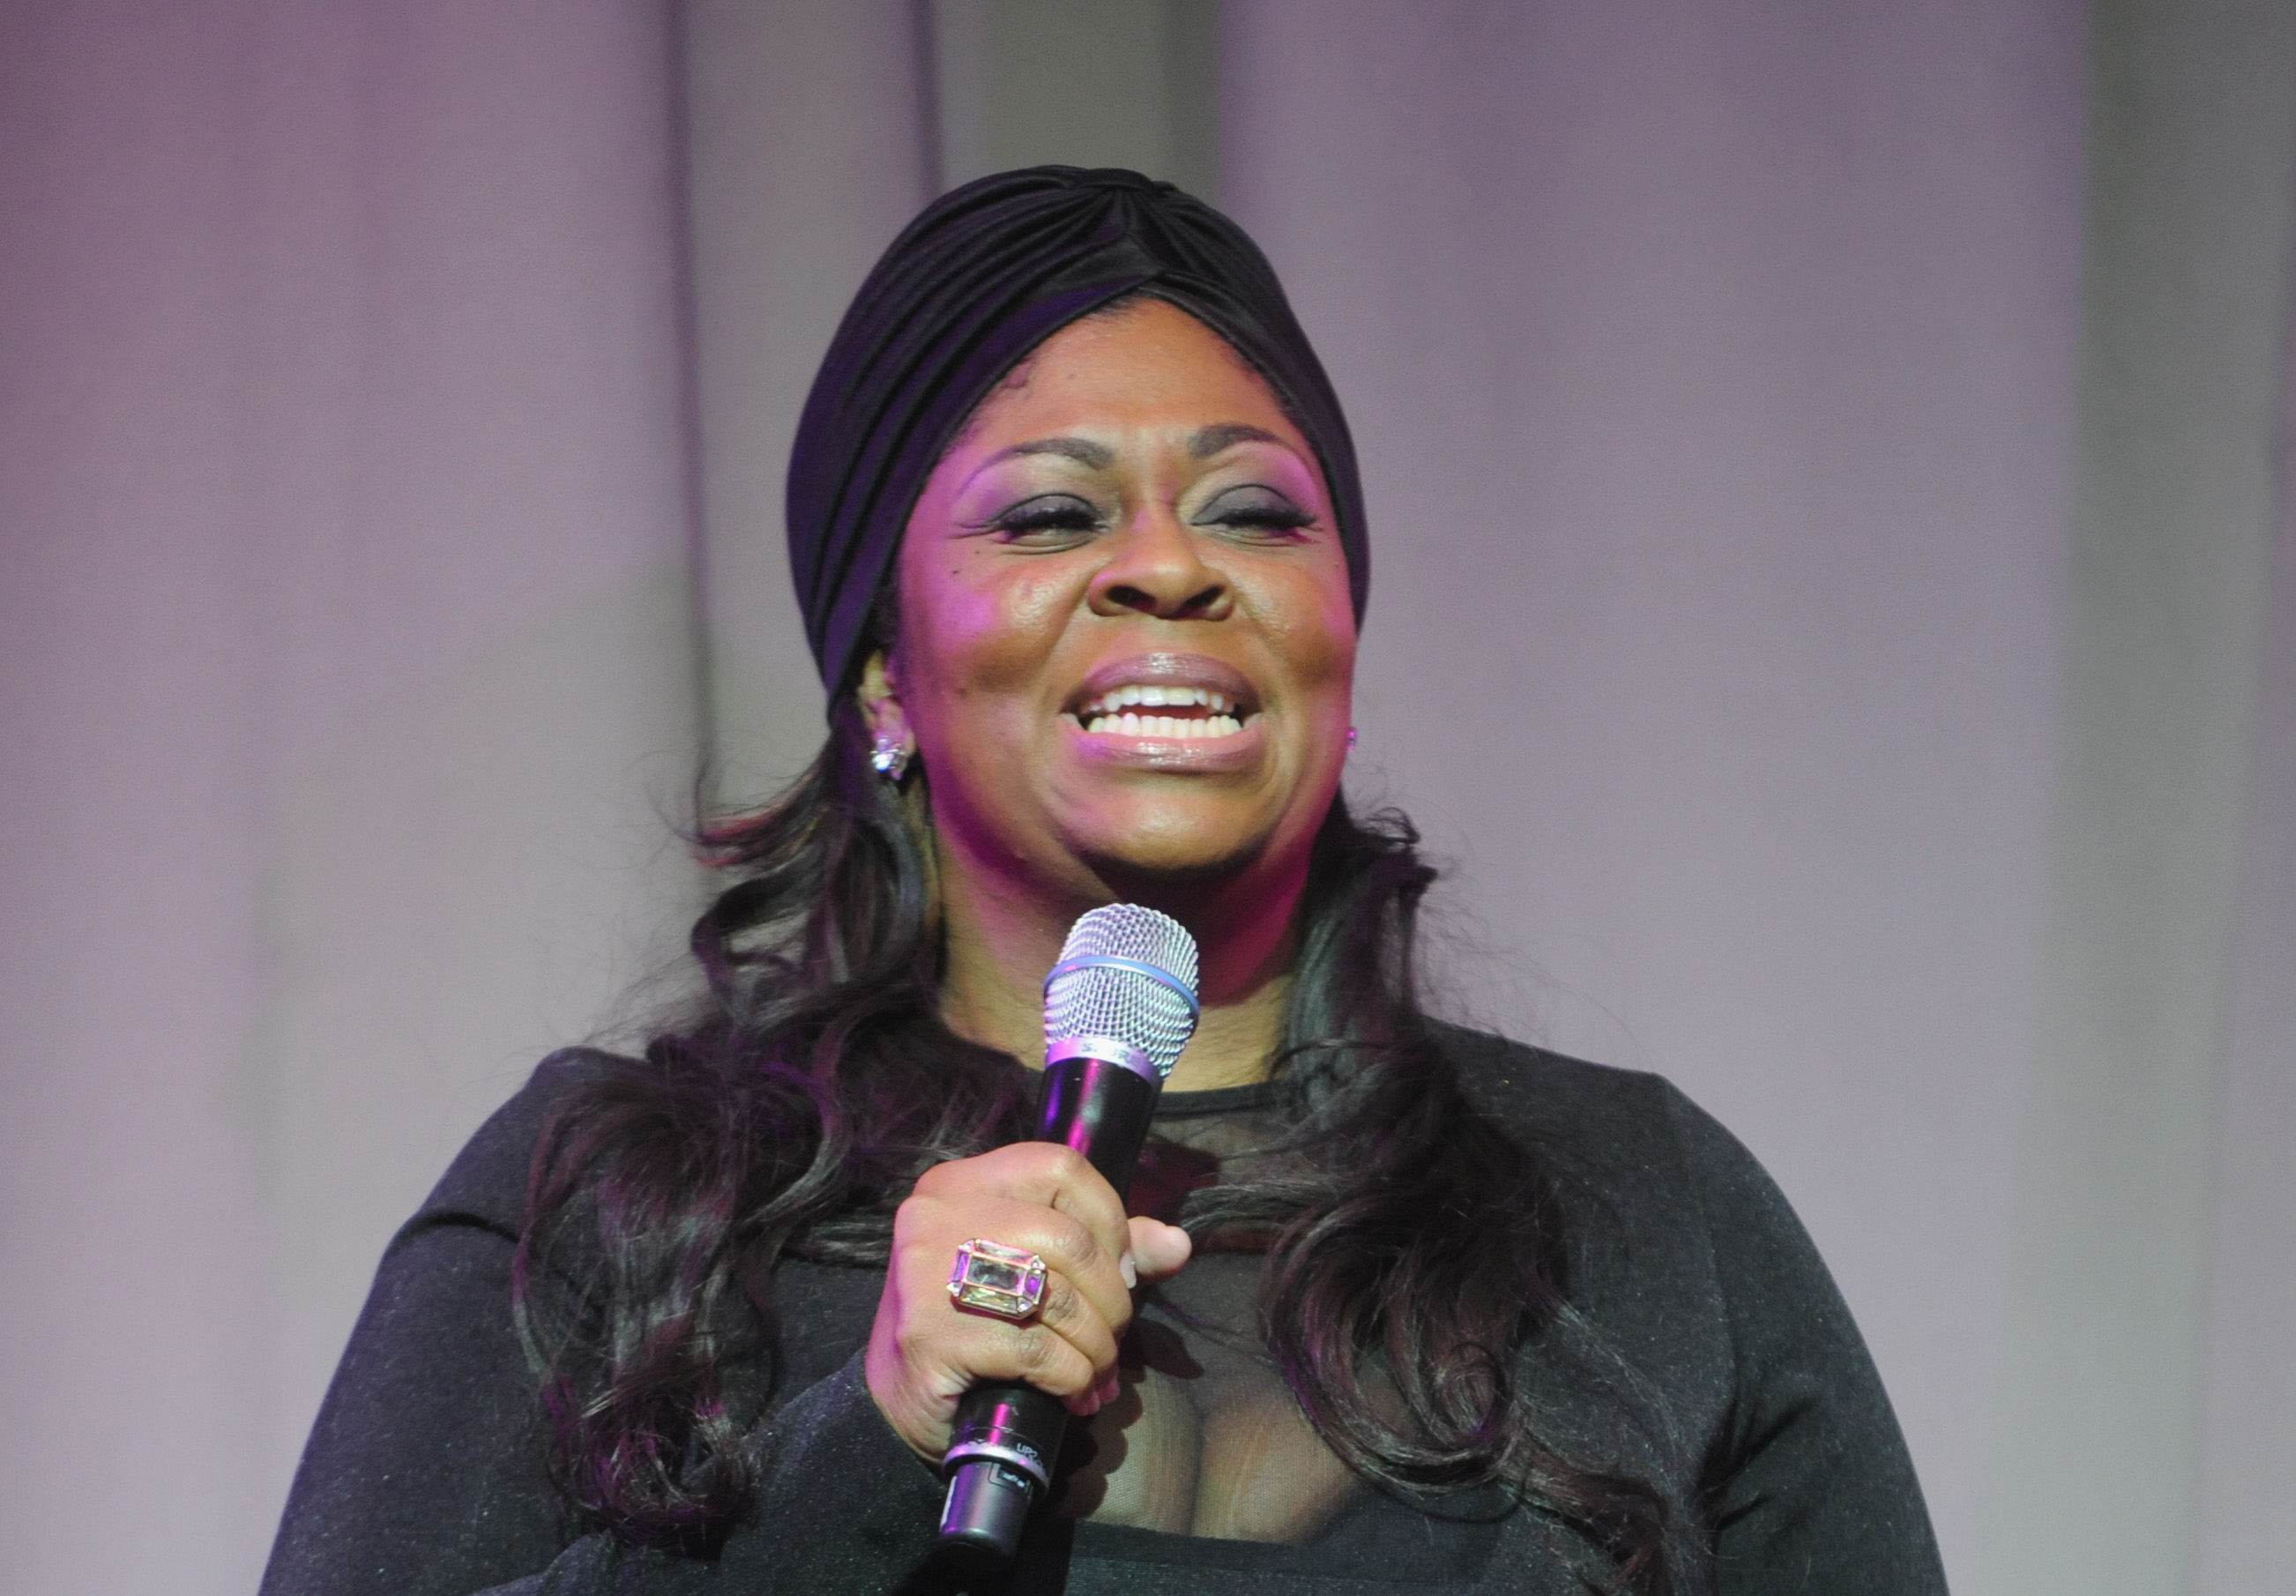 WATCH: Kim Burrell Video Rant Against Gay People